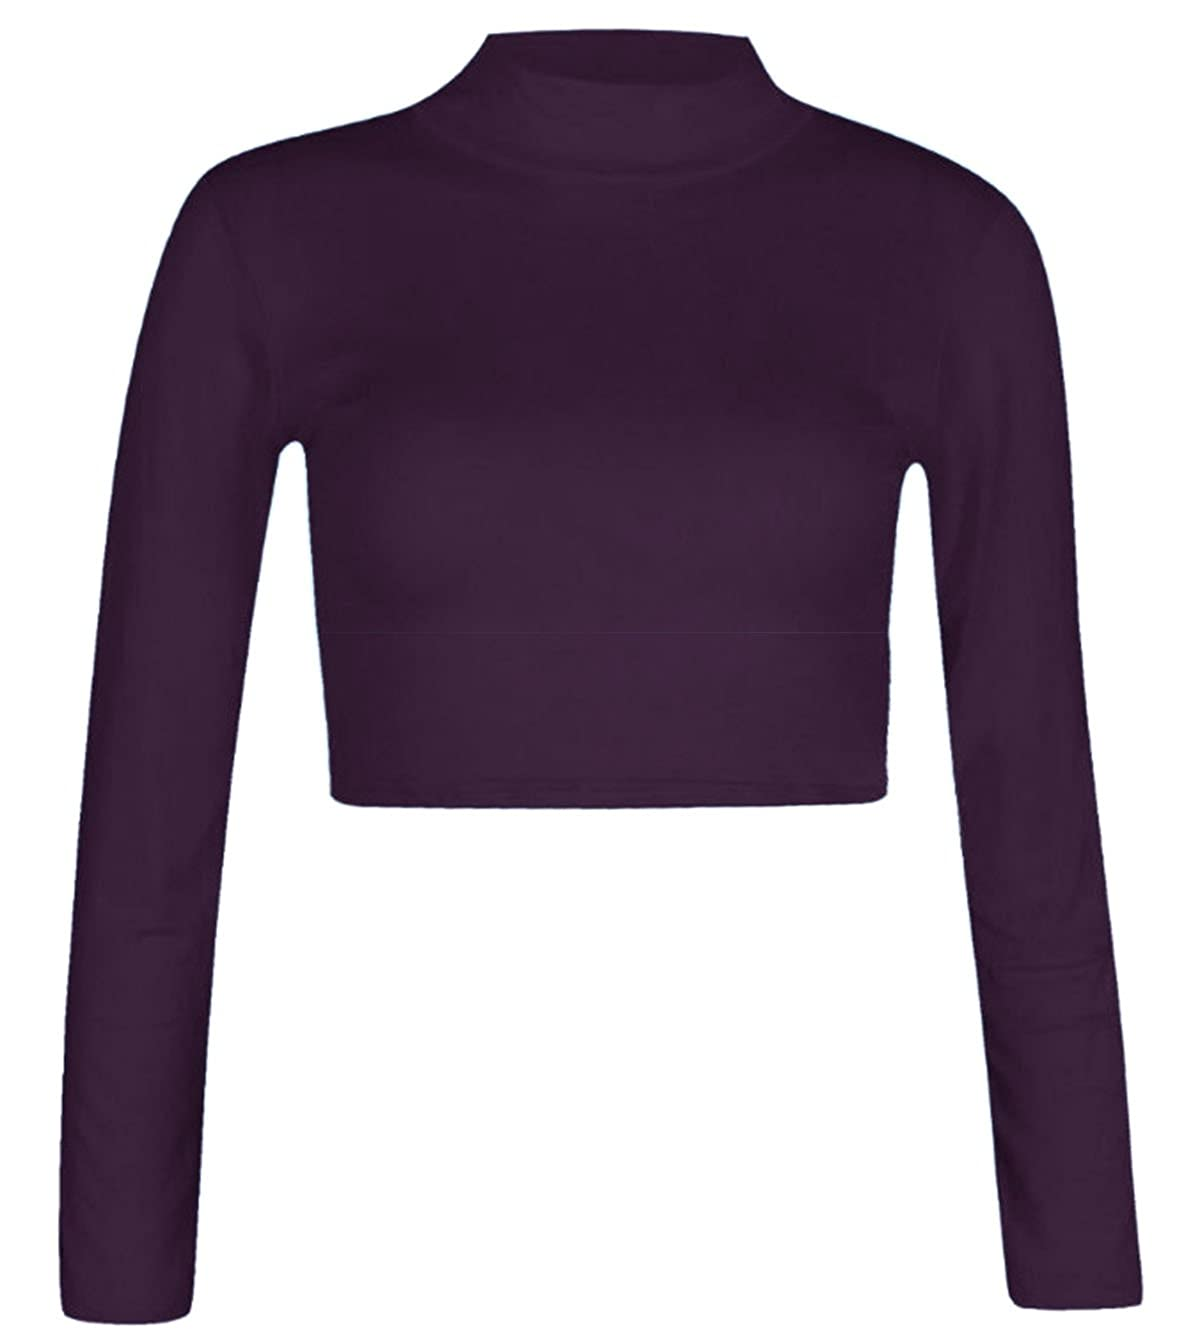 a016bc63bcb FAST TREND CLOTHING New Kids Girls Plain Turtle Polo High Neck Long Sleeve  Crop Top Shirt Age 7-13 Years: Amazon.co.uk: Clothing